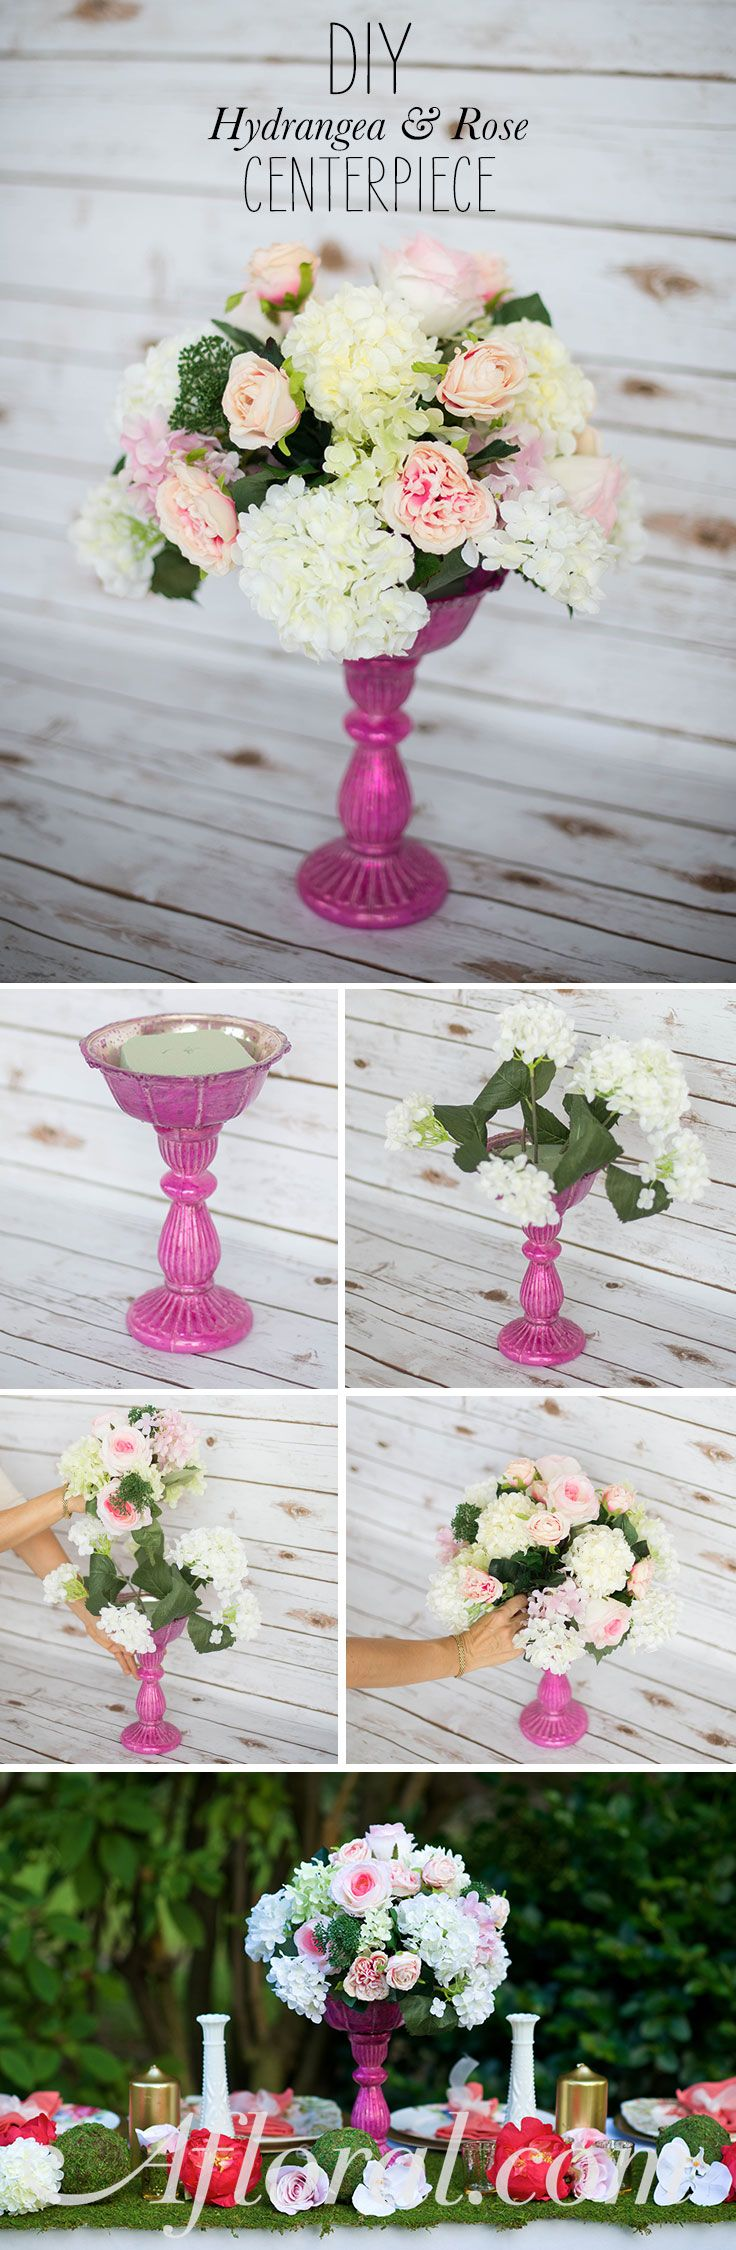 DIY Silk Flower Centerpiece.  You won't believe how lush and real these silk flowers are.  Create a gorgeous wedding centerpiece that you can keep for years after your wedding.  Start by placing floral foam in your favorite Afloral container.  Insert the hydranges and roses around the foam.  Continue adding flowers until there are no empty spaces and the arrangement is full and beautiful.  Find everything you need at Afloral.com.